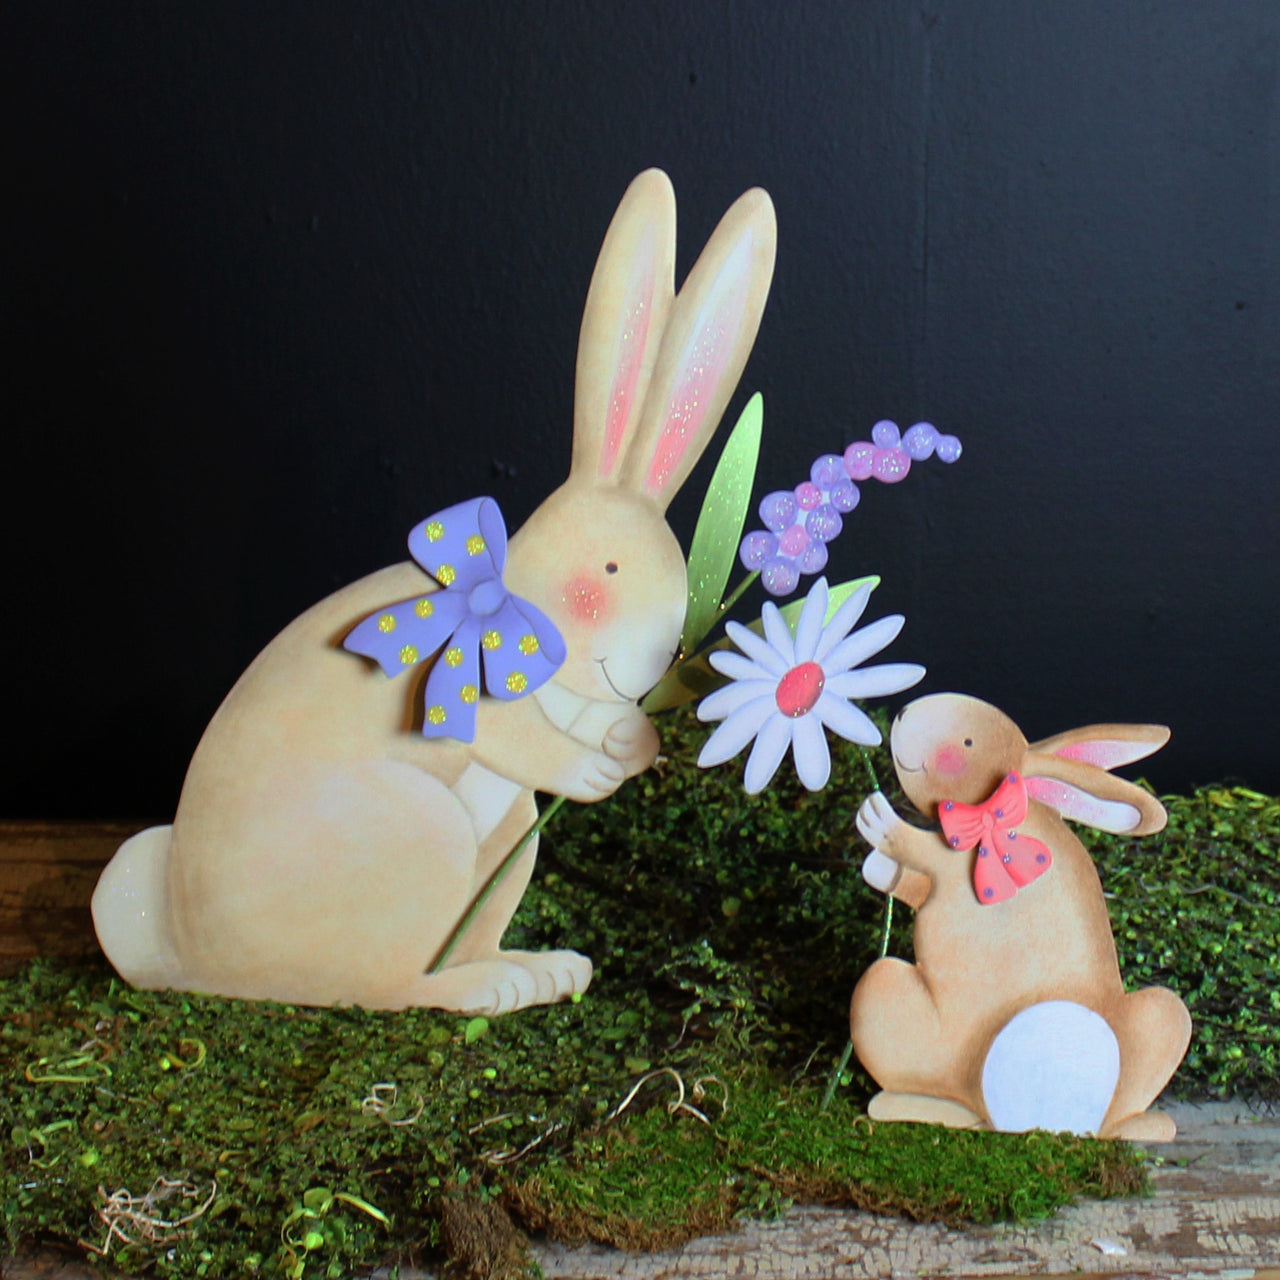 Pastel Rabbit with Bow and Purple Flower by The Round Top Collection E9034 - FancySchmancyDecor - 1